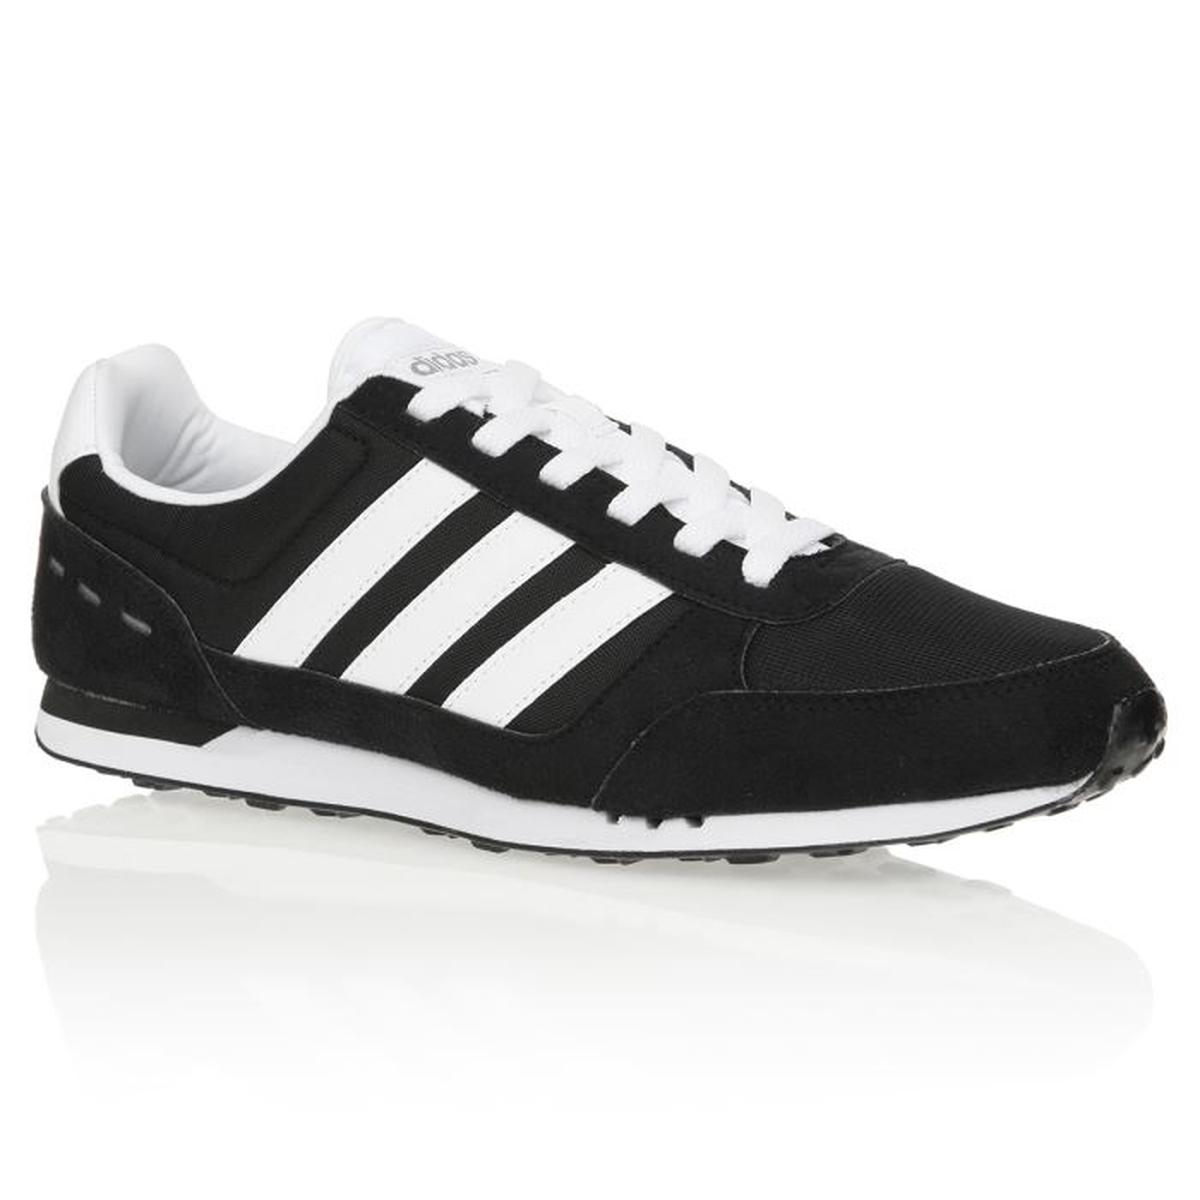 Basket Adidas Adidas Basket Lk1ctfj Homme Intersport Intersport tdsrCQxh